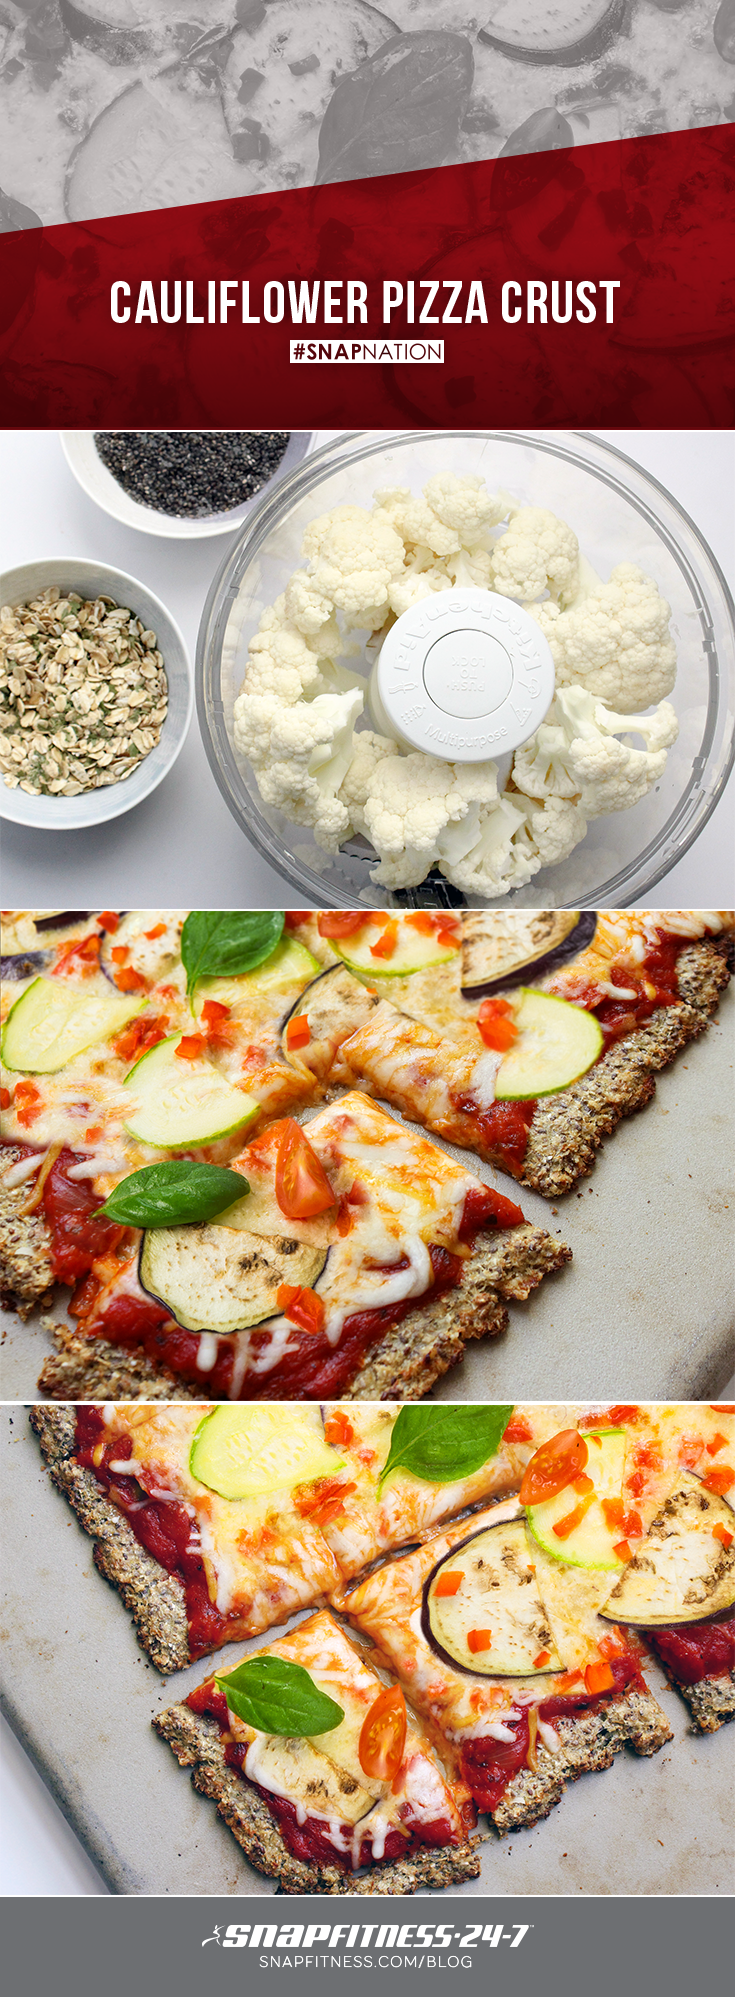 The best day of the year is here! No, we're not talking about leg day... It's National Pizza Day! Try our delicious, veggie-packed, cauliflower crust pizza for healthier pizza option that will make your taste buds say WOW!